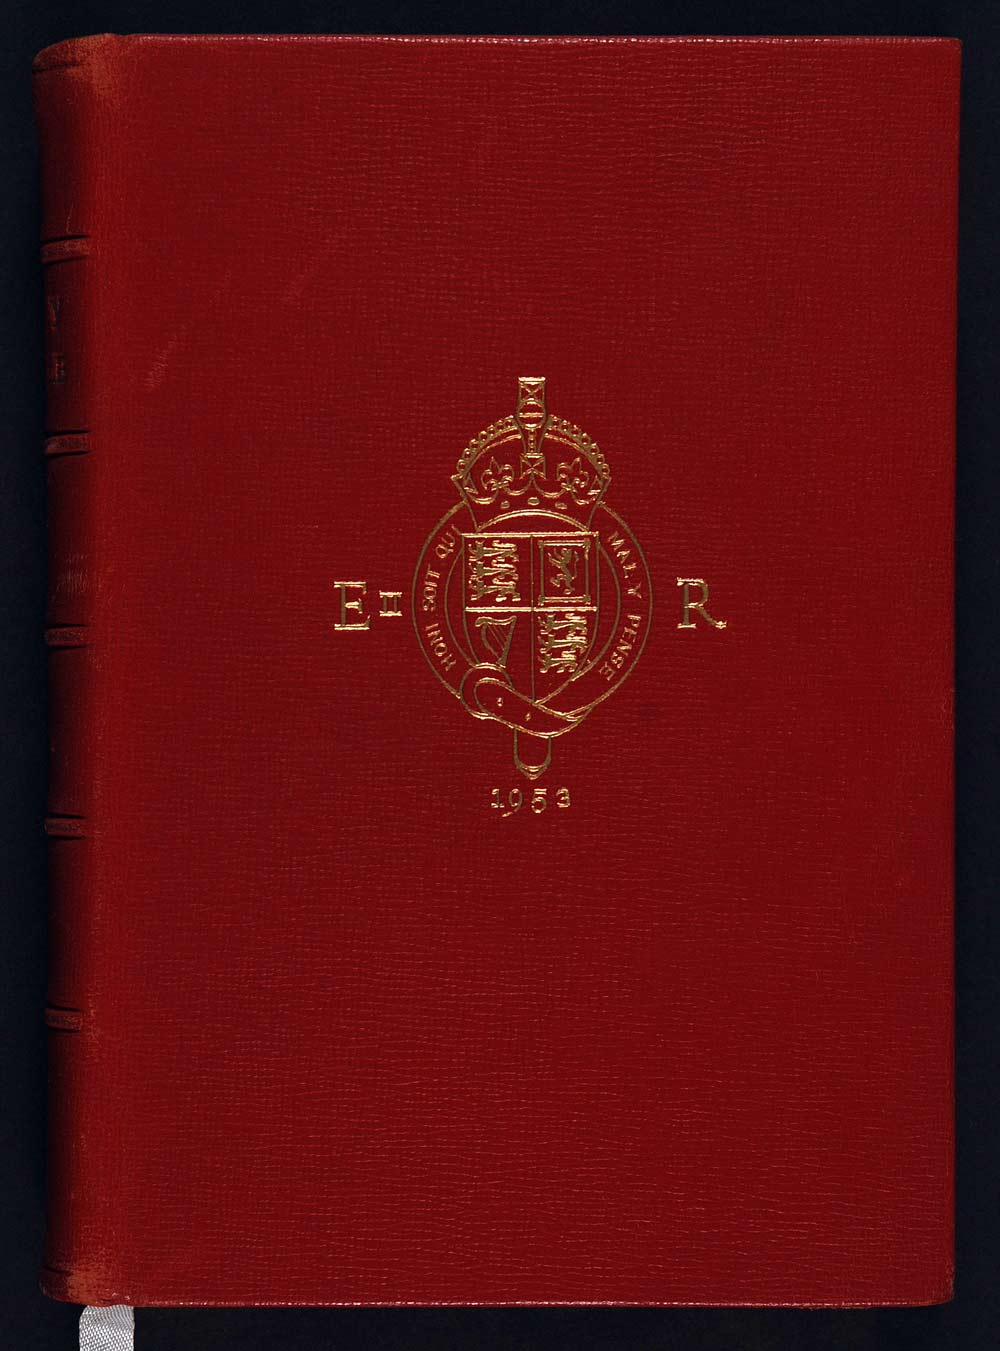 Coronation Bible. The Holy Bible containing the Old and New Testaments … Oxford: At the University Press, [1953].